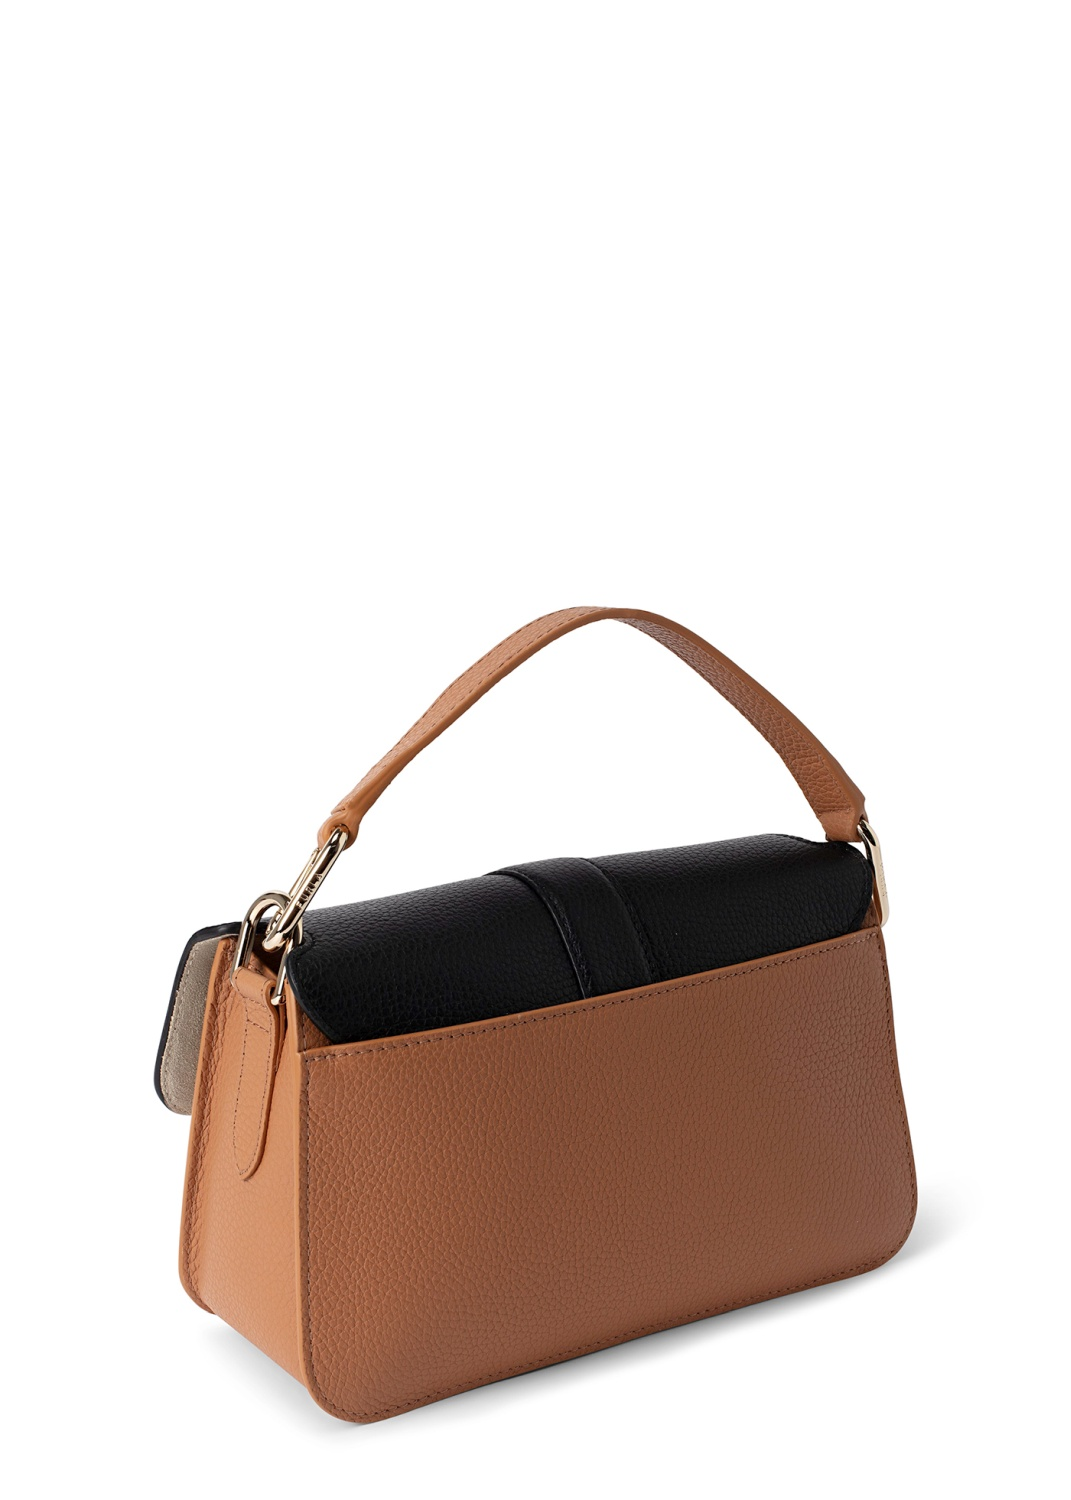 FURLA SOFIA GRAINY S TOP HANDLE image number 1